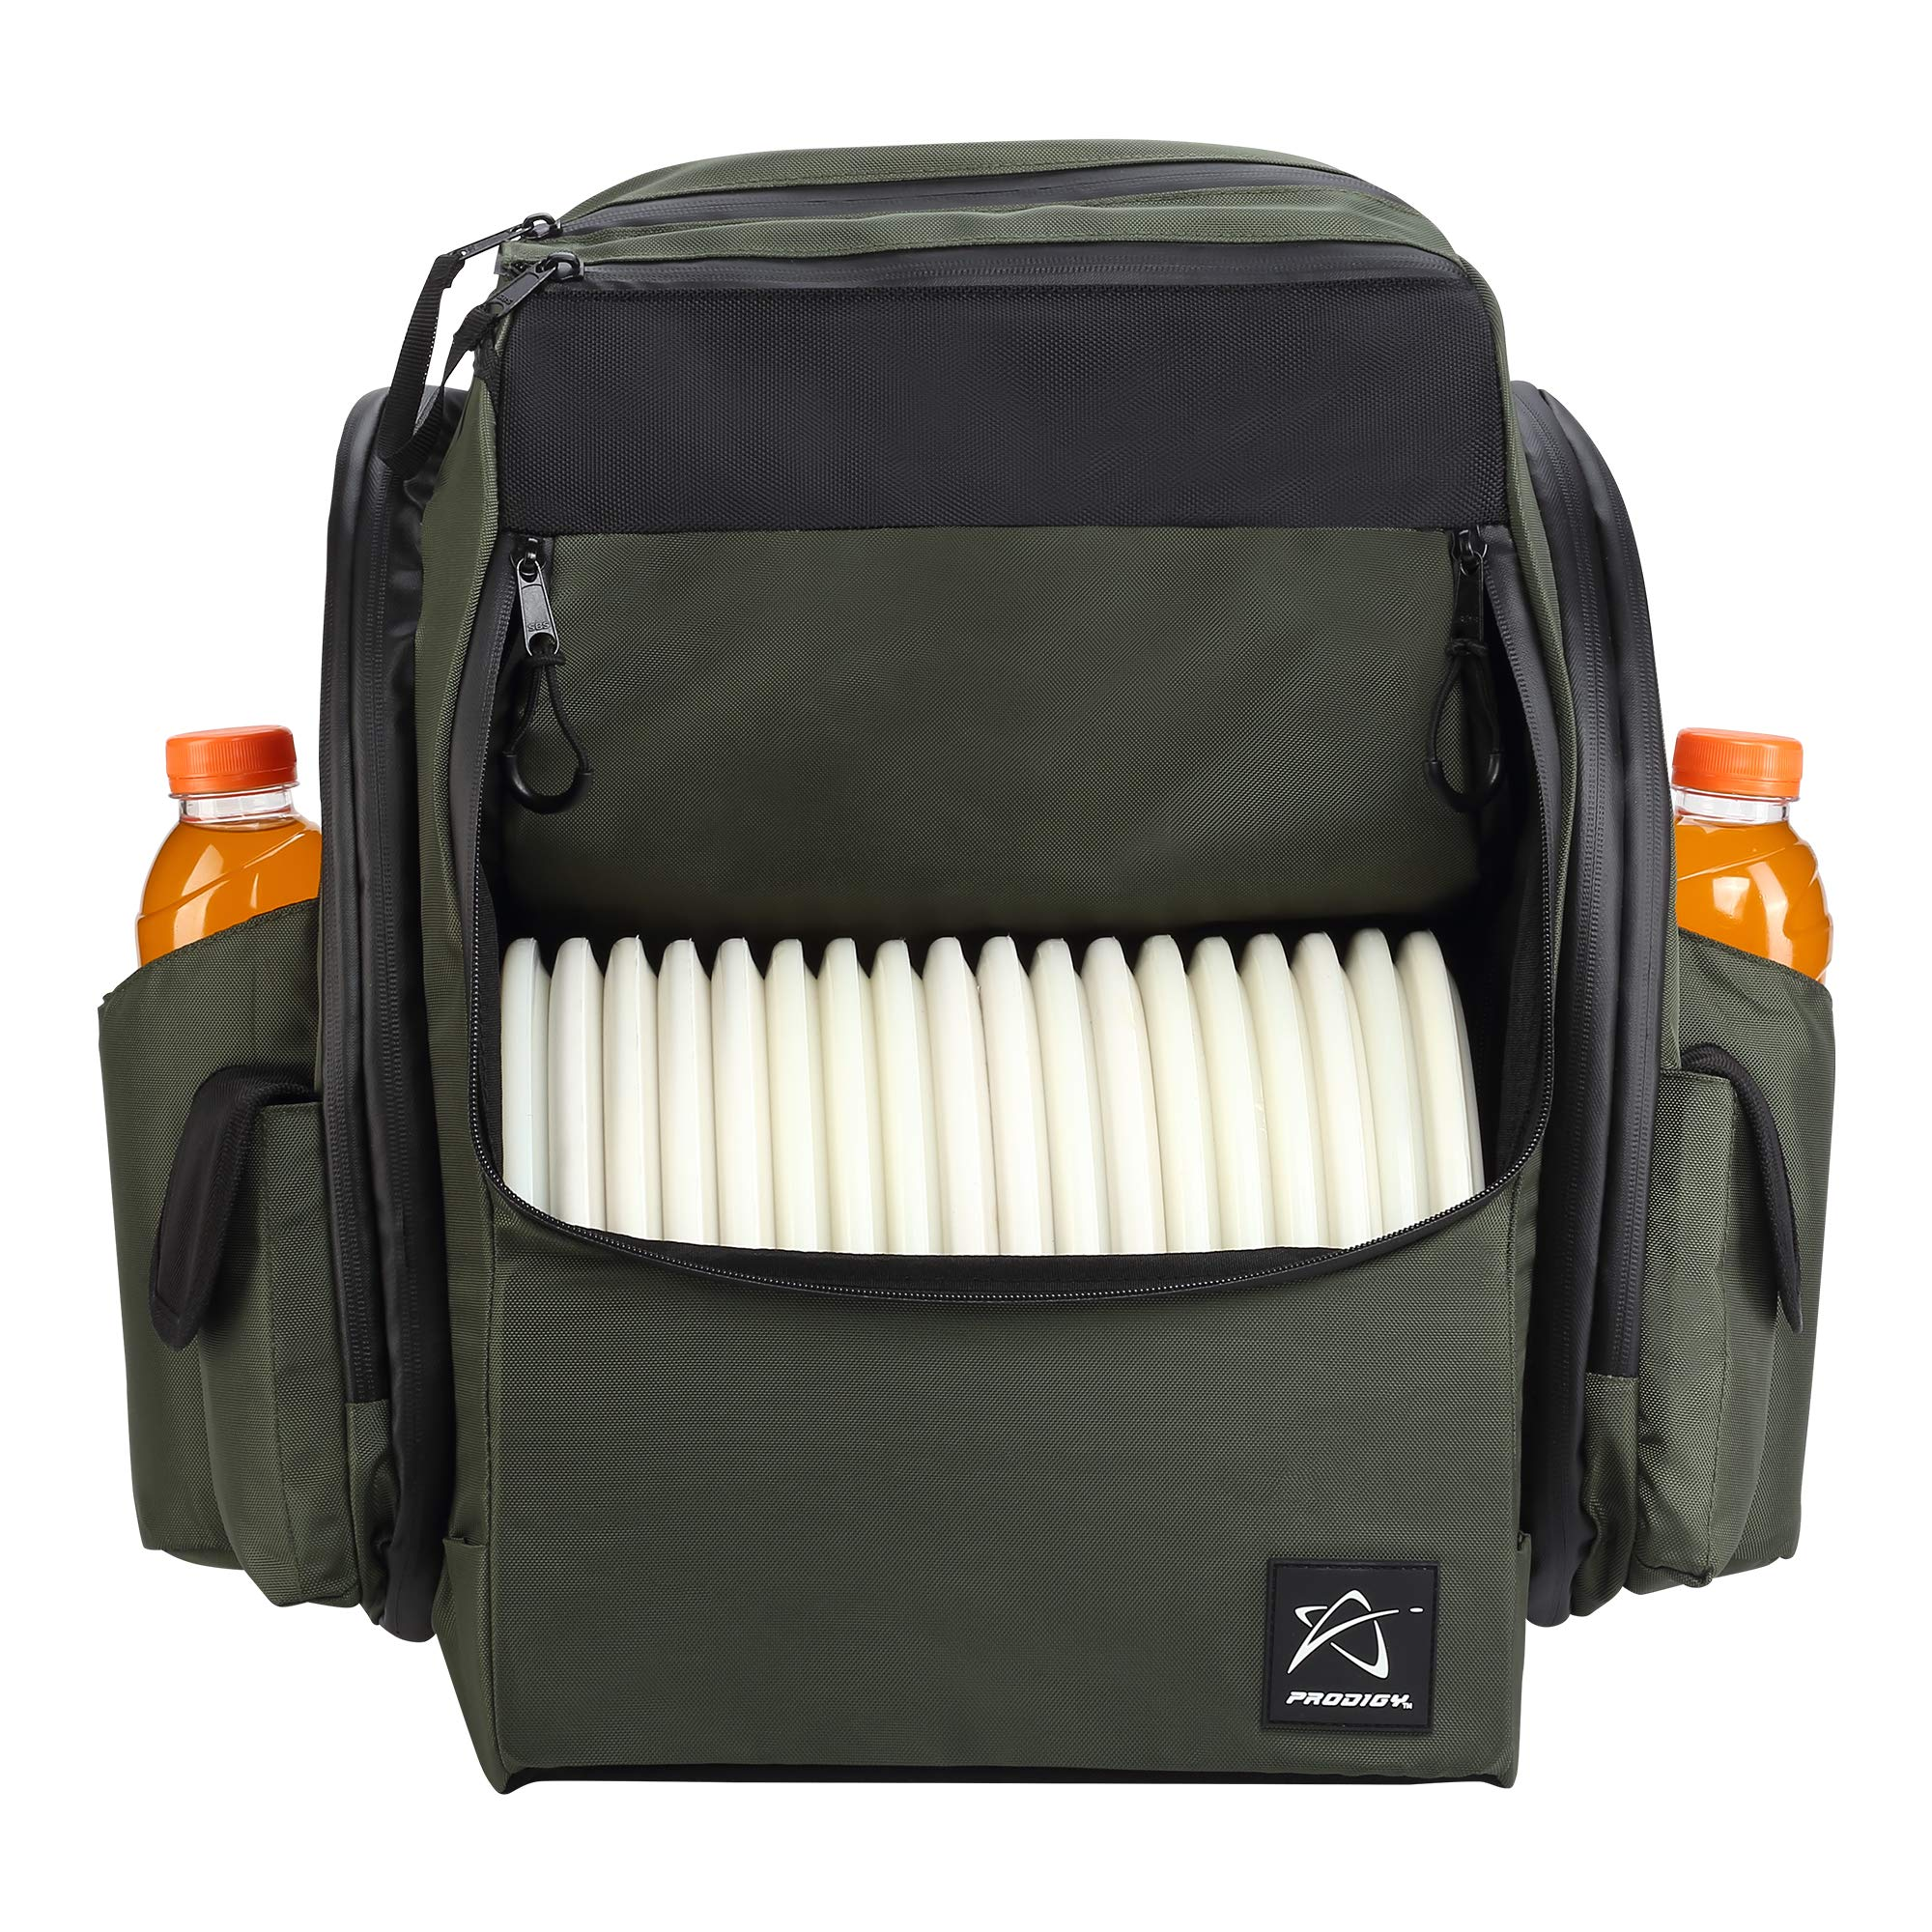 Prodigy Disc BP-1 V2 Disc Golf Backpack Bag - Fits 30+ Discs - Pro Quality (Green/Black, Rainfly) by Prodigy Disc